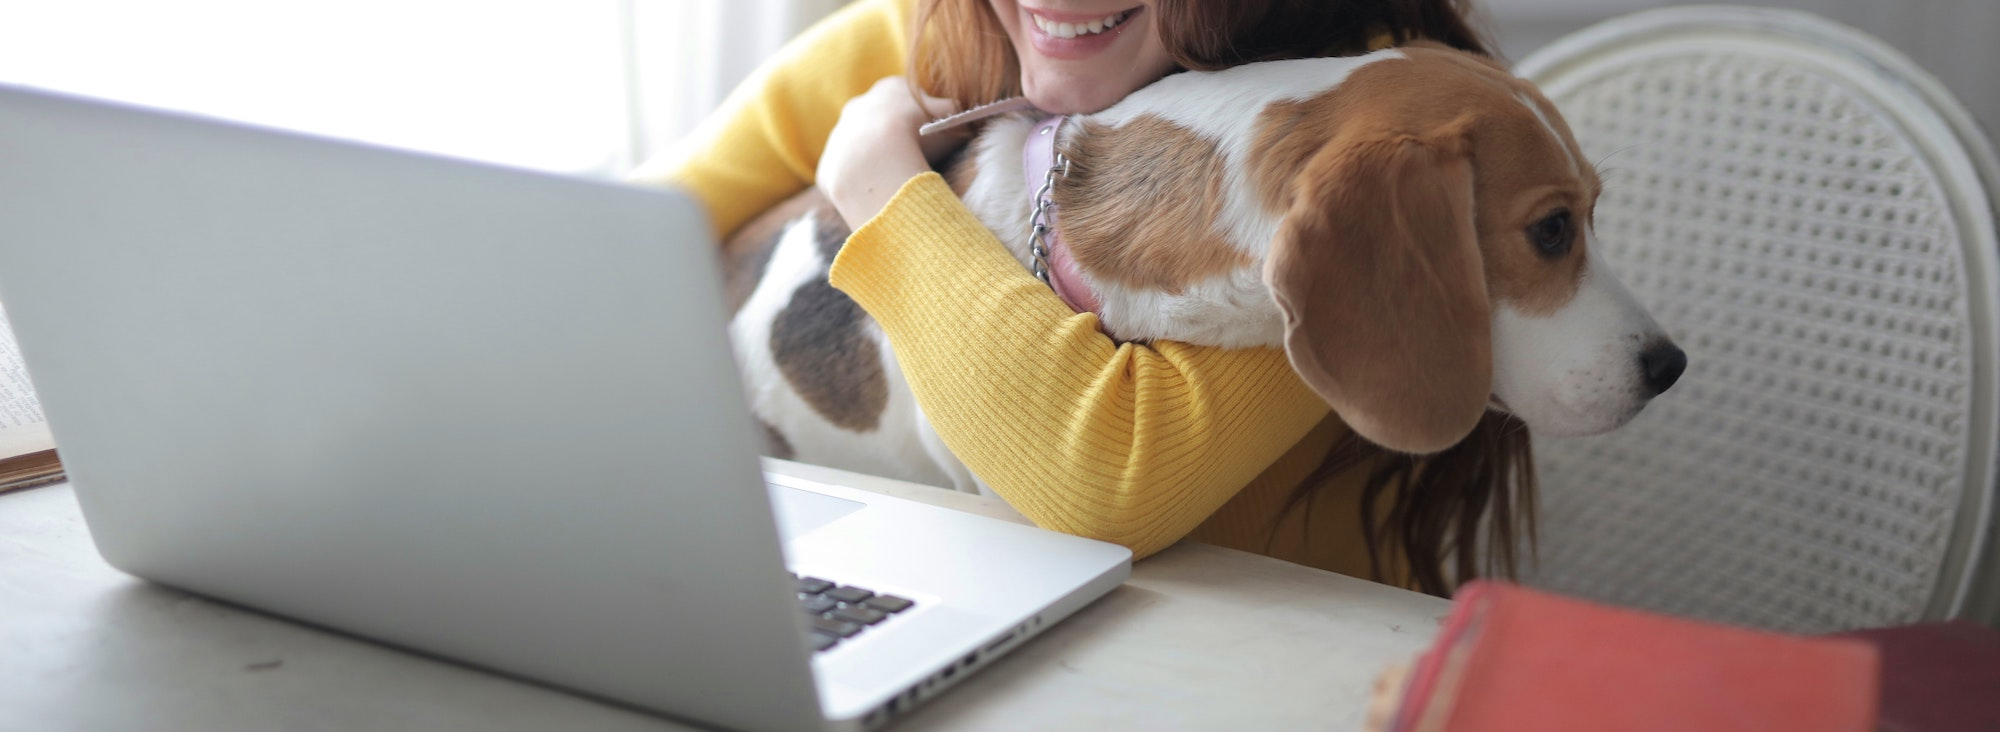 woman cuddling her dog whilst working from home on her laptop